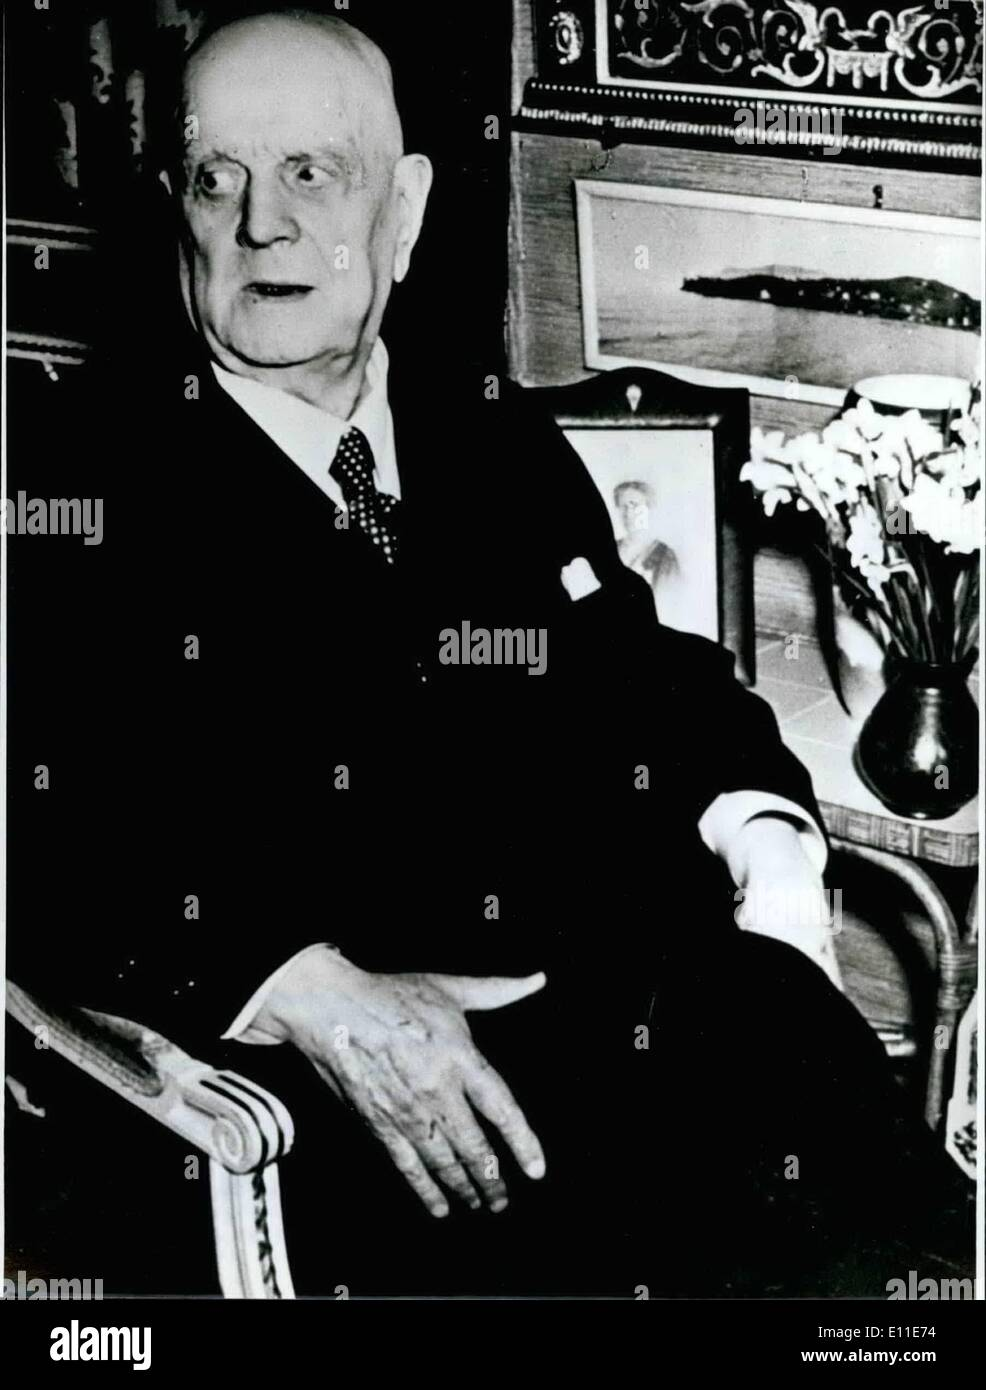 Sep. 09, 1977 - 20th Day Of Death Of Jean Sibelius: In this year it is 20th anniversary of Jean Sibelius' death (JEAN SIBELIUS - our picture), - the famous Finnish composer died on September 20th, 1957 in Jarvenpaa near Helsinki. Sibelius studied n Germany and Austria and after his time of education 1893 he was teacher for theory at the conservatoire in Helsinki. His artistic activity has its roots in the Finnish national character and gets its deepest impression from the intimate meeting with the landscape of his home - Stock Image